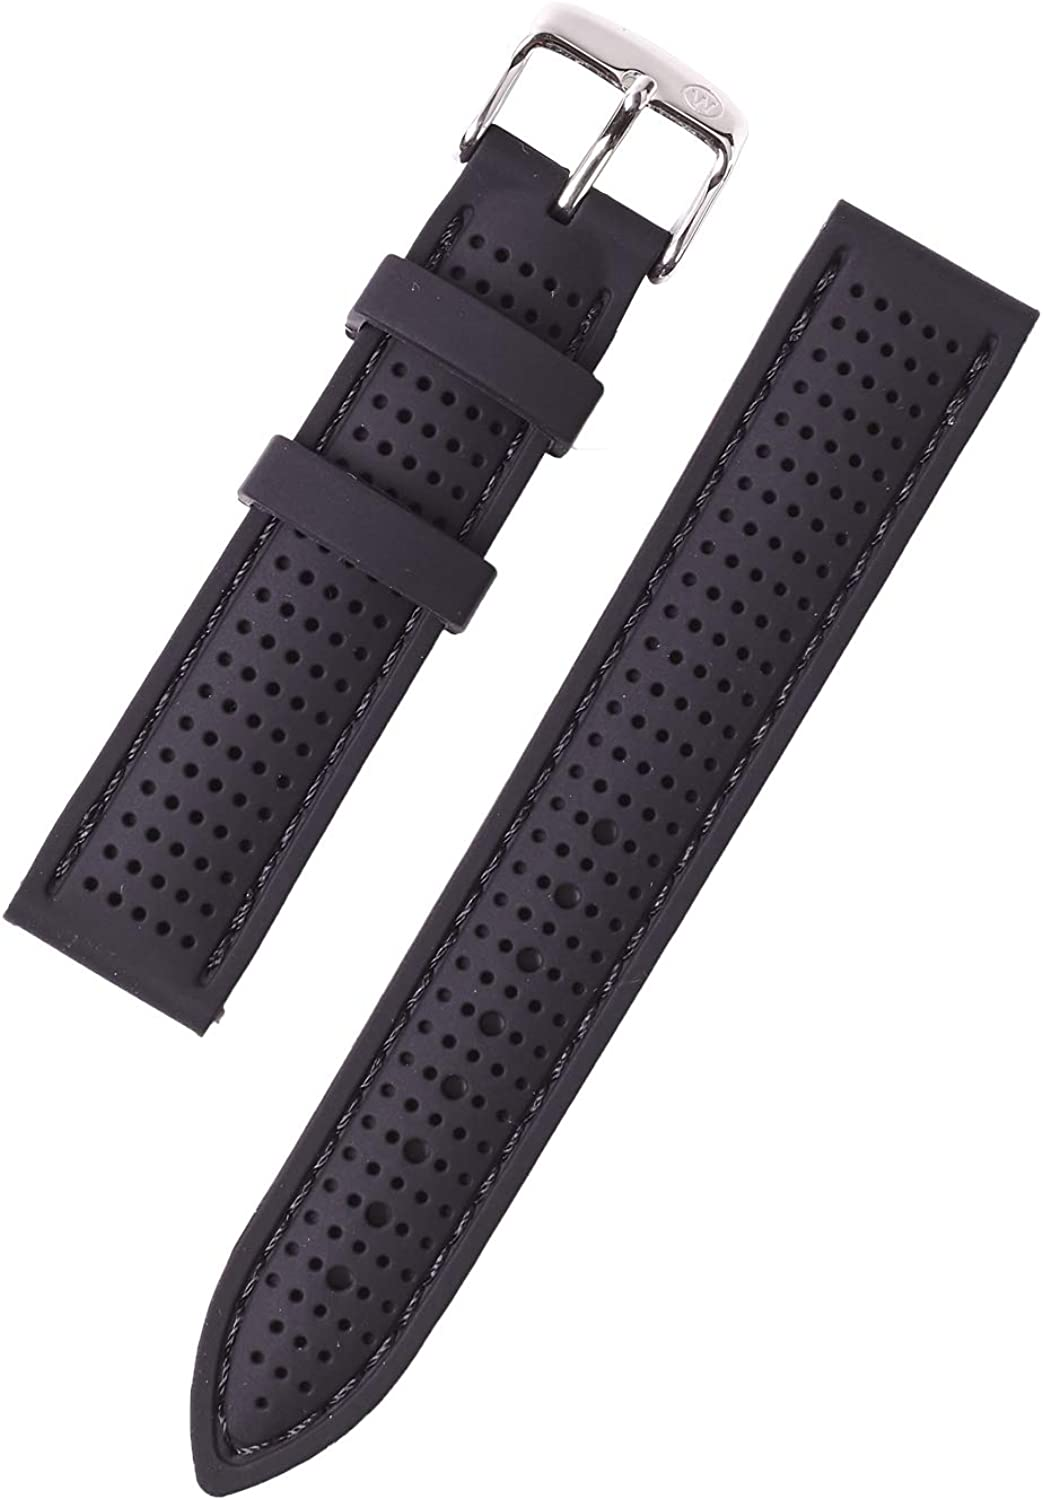 W&S 2-Piece Rubber Silicone Watch Strap